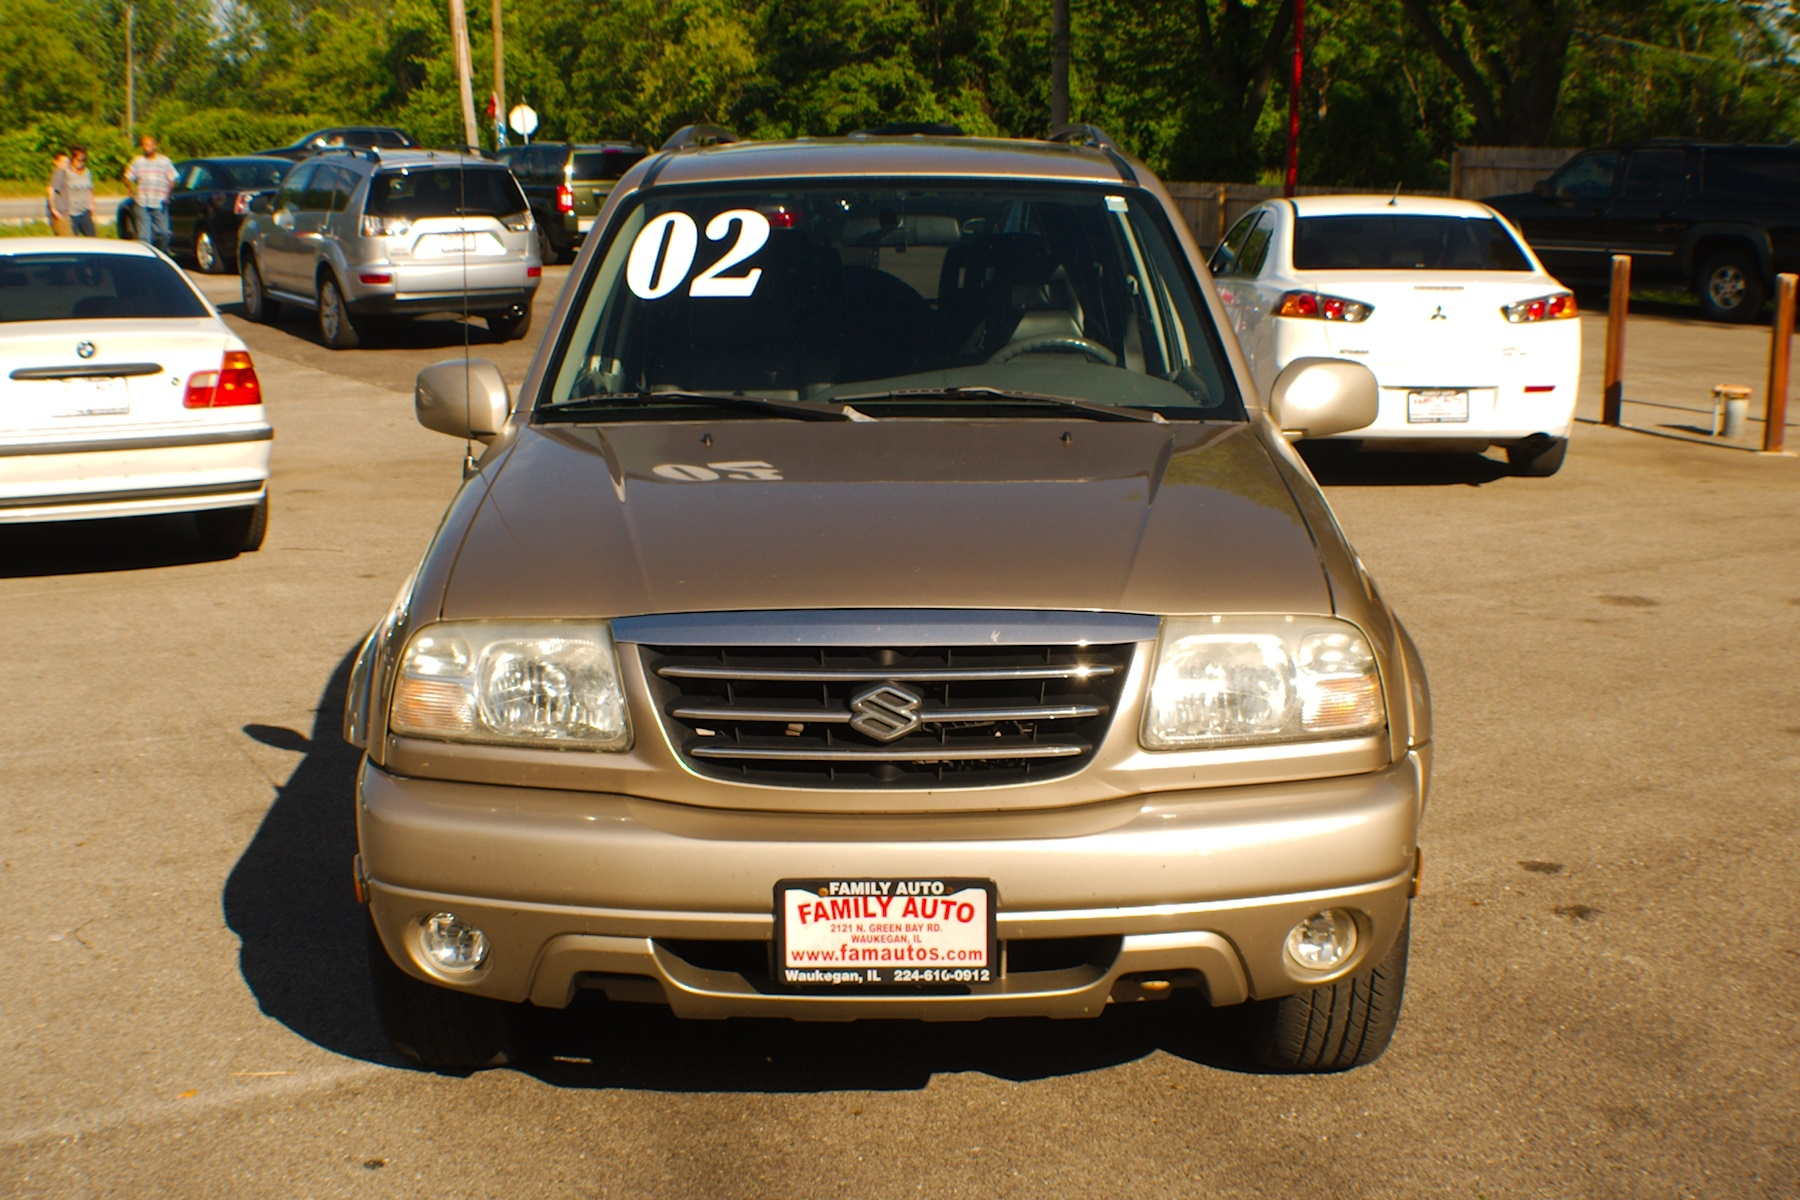 2002 Suzuki XL7 Limited 4x4 Sand Used SUV Sale Gurnee Kenosha Mchenry Chicago Illinois